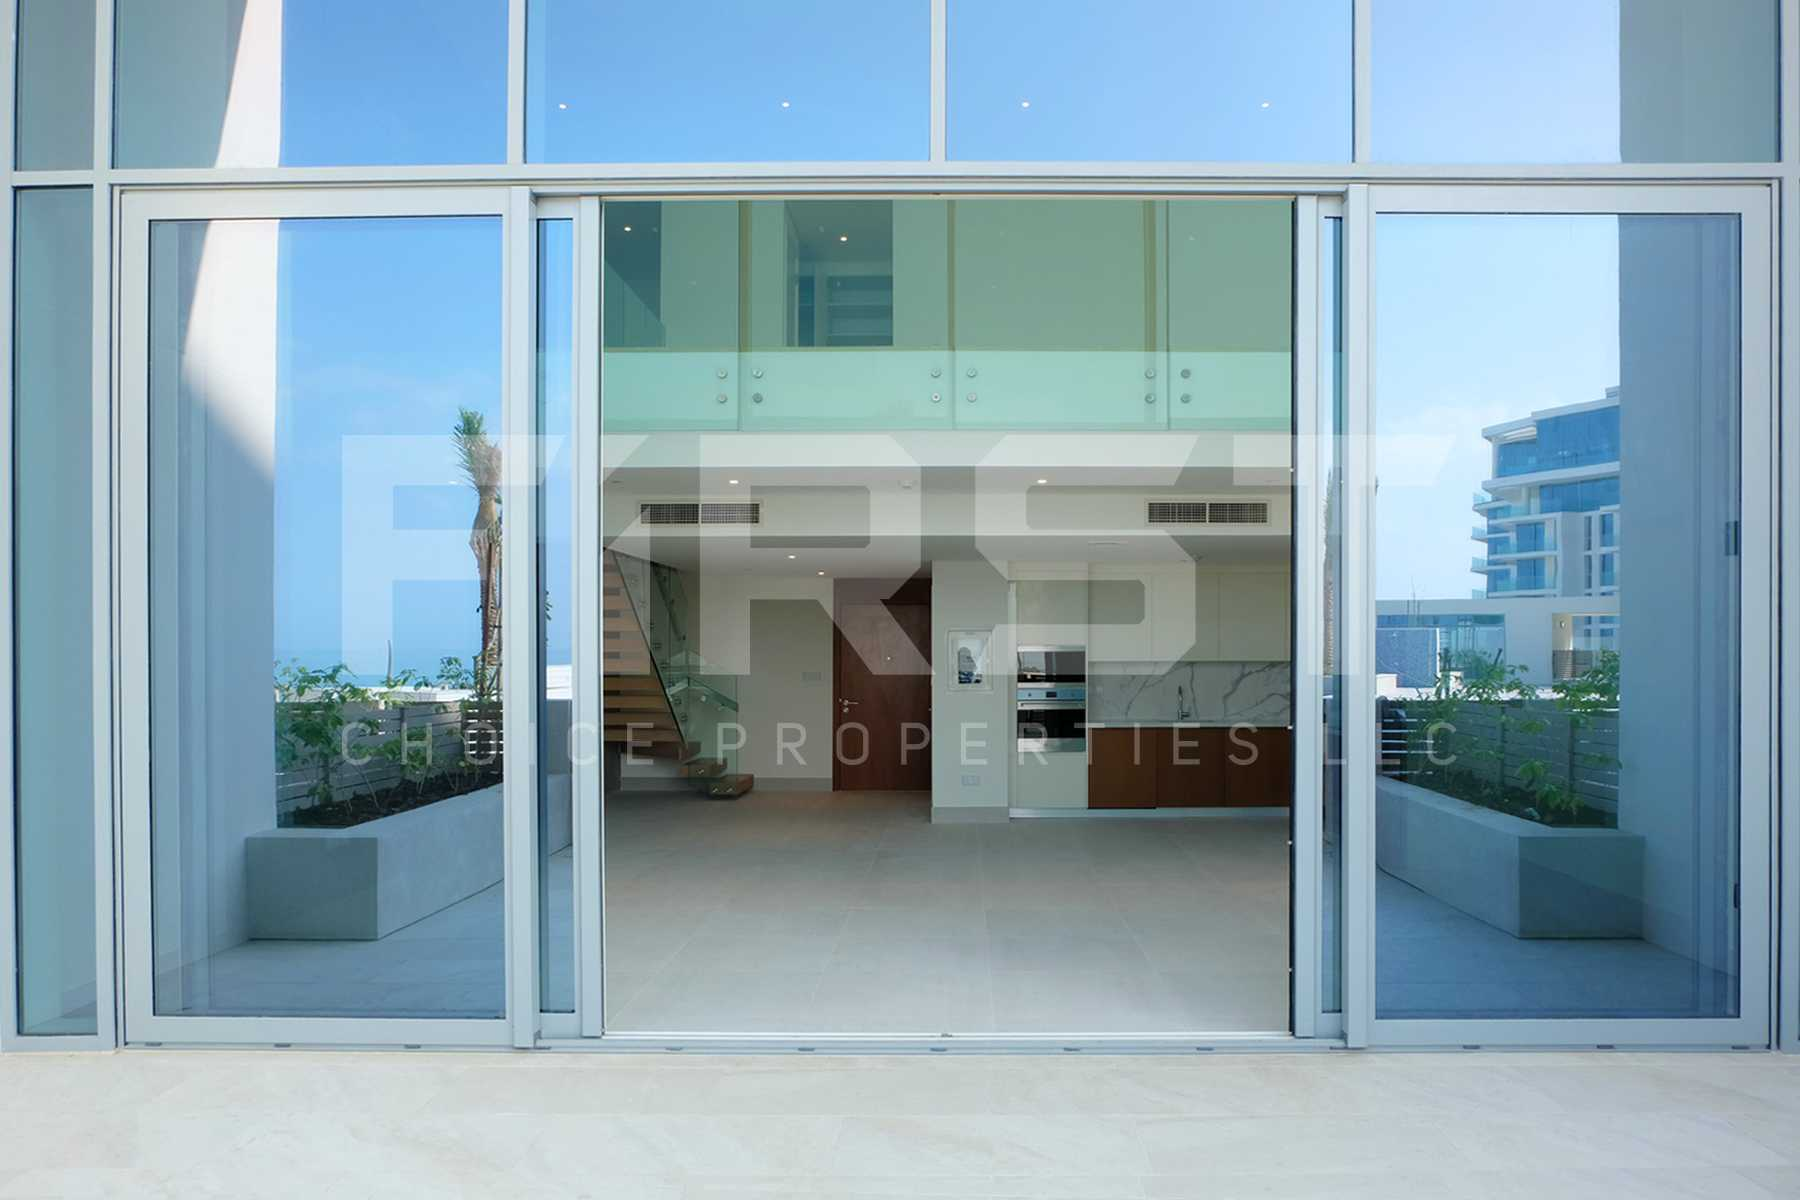 Internal Photo of 1 Bedroom Loft Apartment in Mamsha Al Saadiyat Island Abu Dhabi UAE (24).jpg